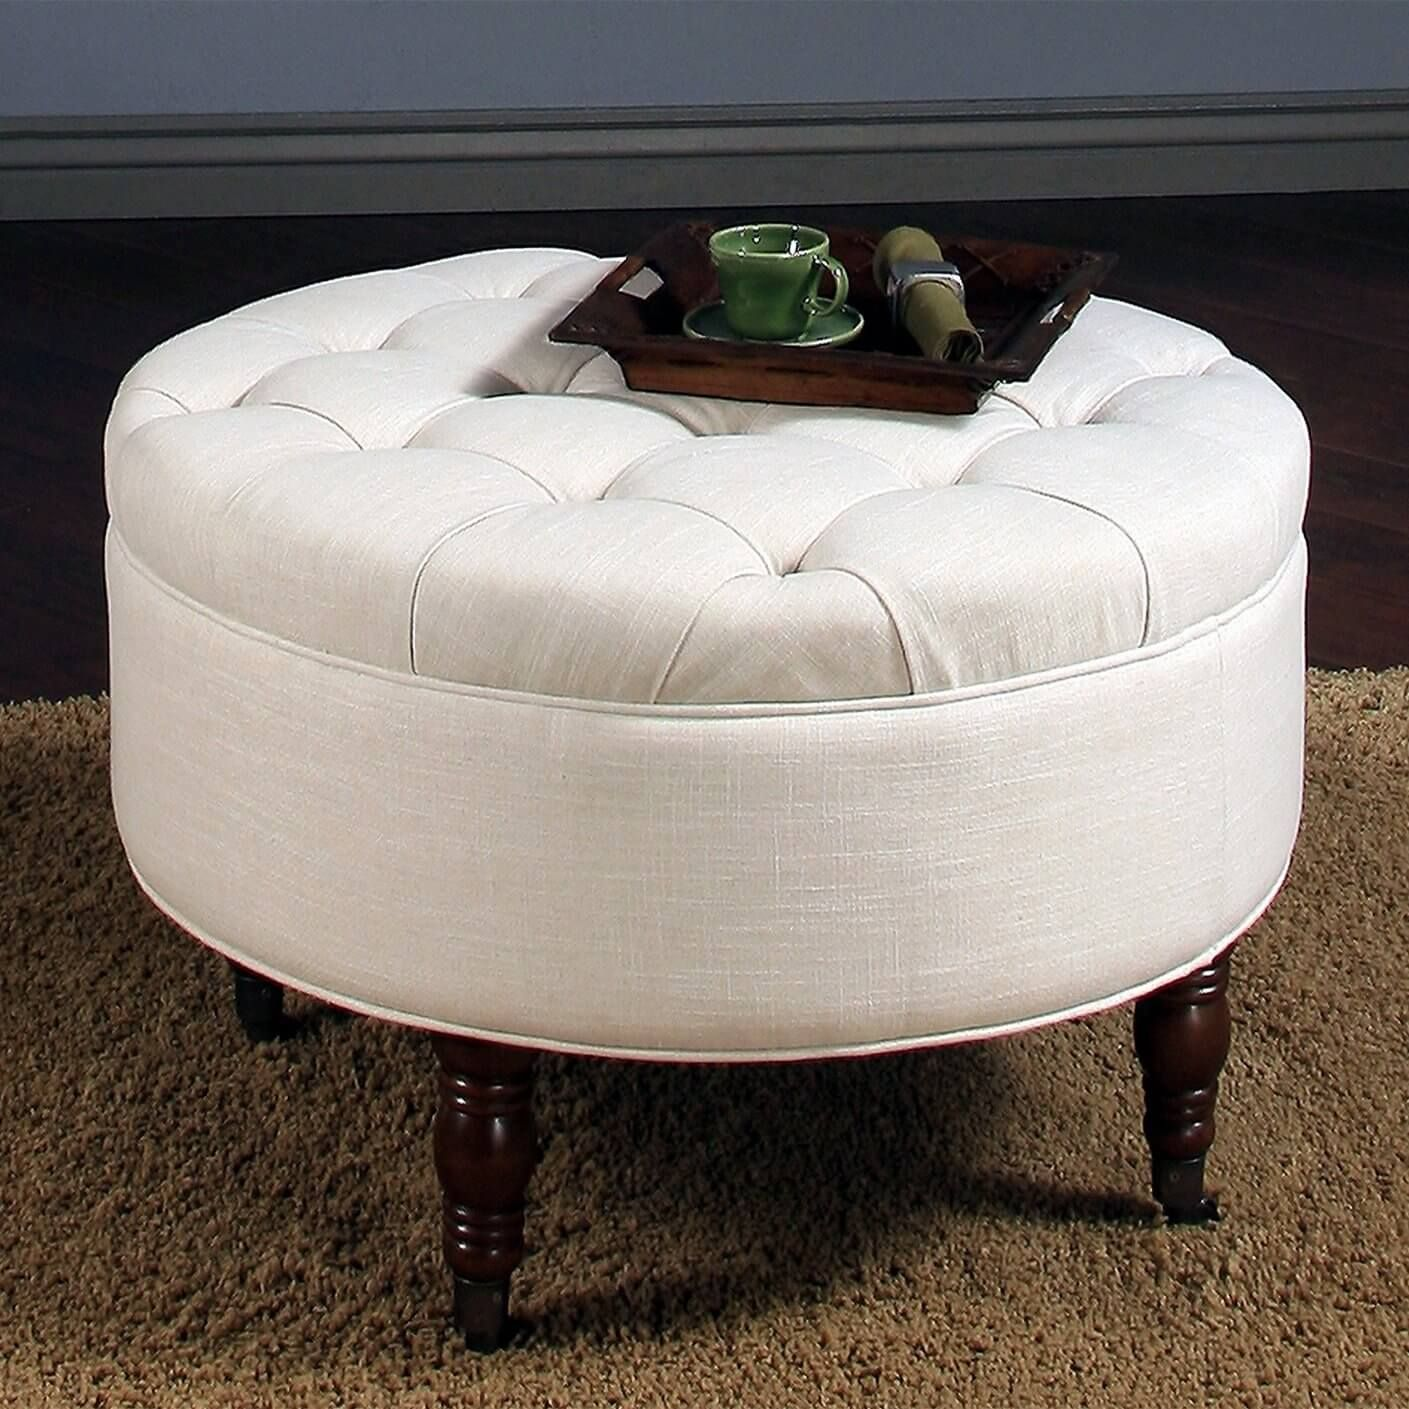 Cream Leather Ottoman Coffee Table Download Round Burgundy Leather Ottoman Coffee Table Calga [ 1409 x 1409 Pixel ]